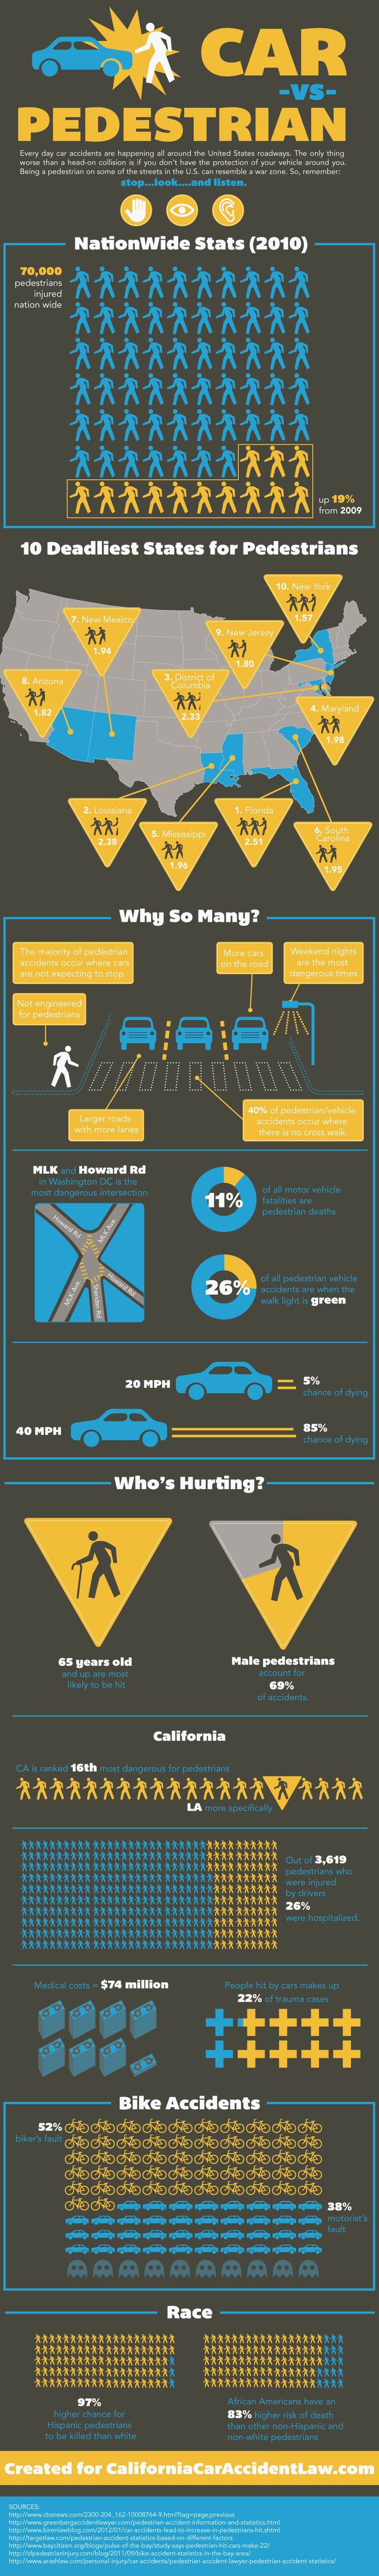 Infographic describing nationwide stats on pedestrian and bike safety. Food for thought.